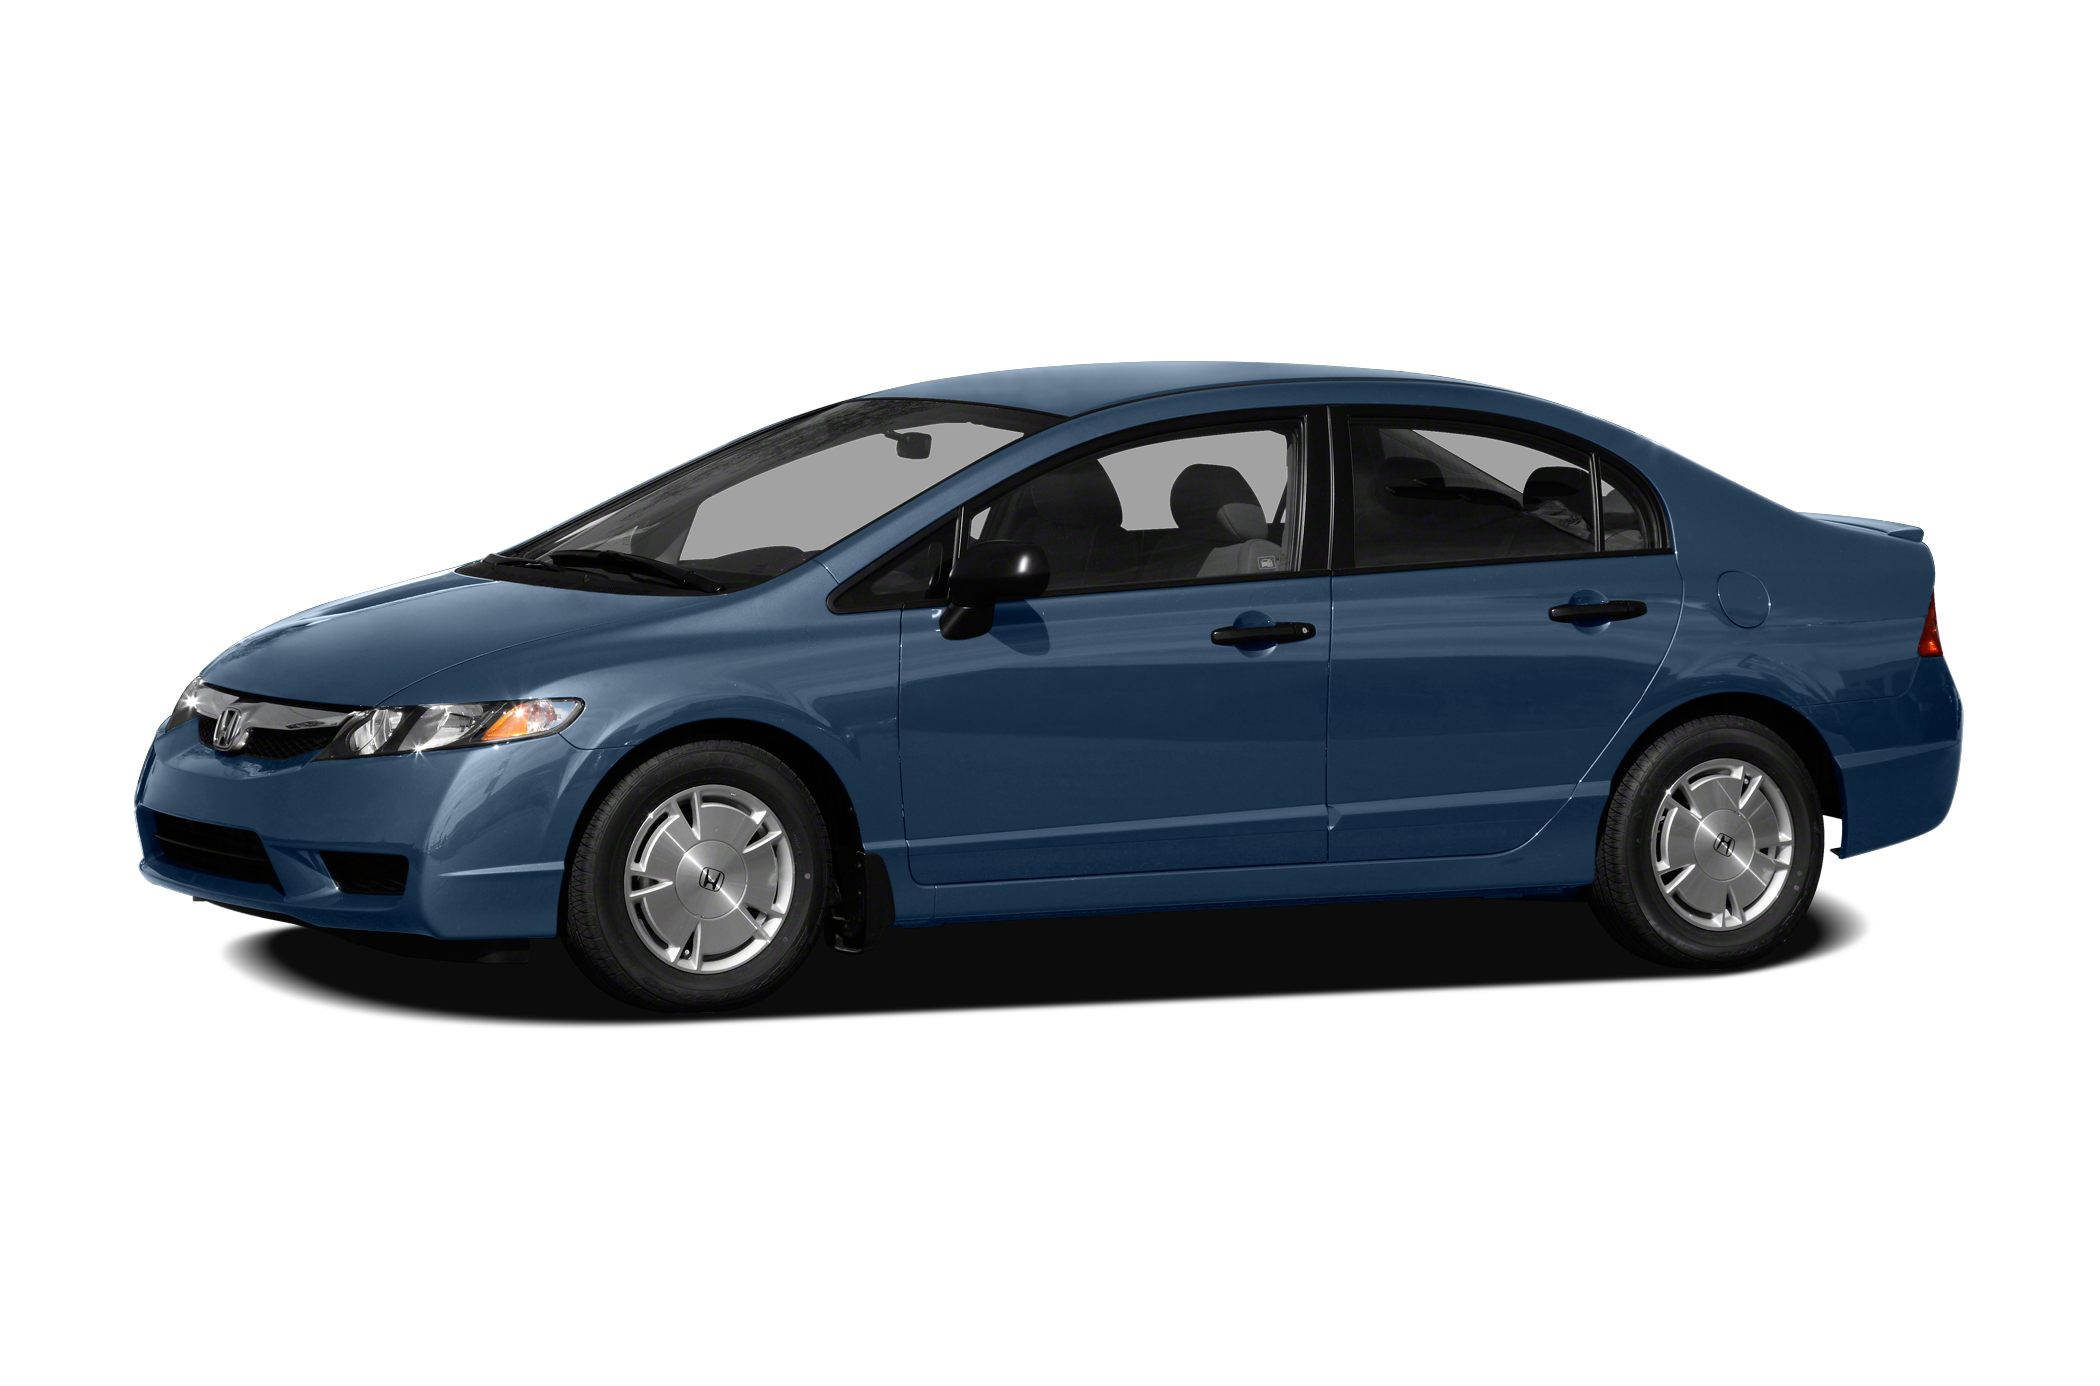 2011 Honda Civic LX Sedan for sale in Aurora for $14,497 with 48,050 miles.